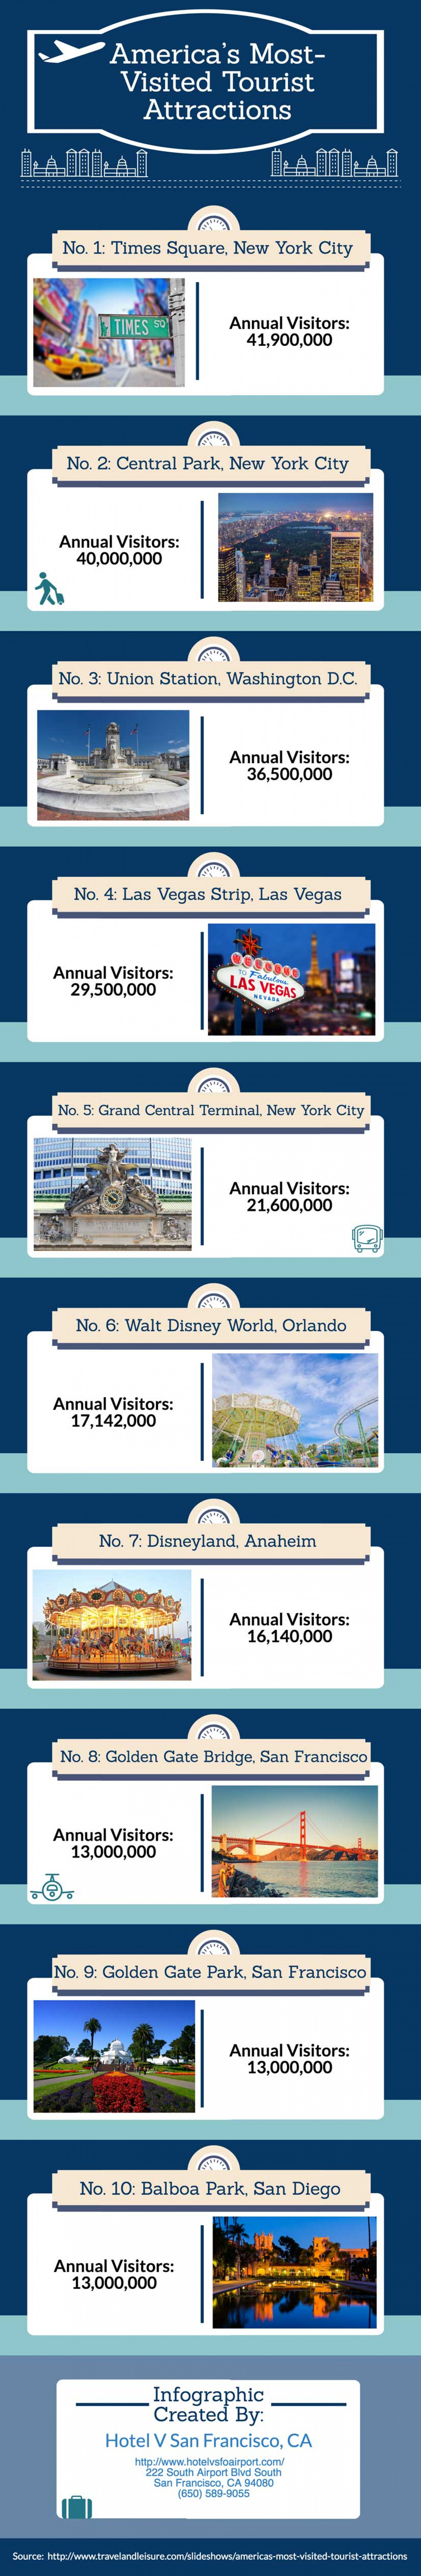 [Infographic] America's Most-Visited Tourist Attractions Infographic